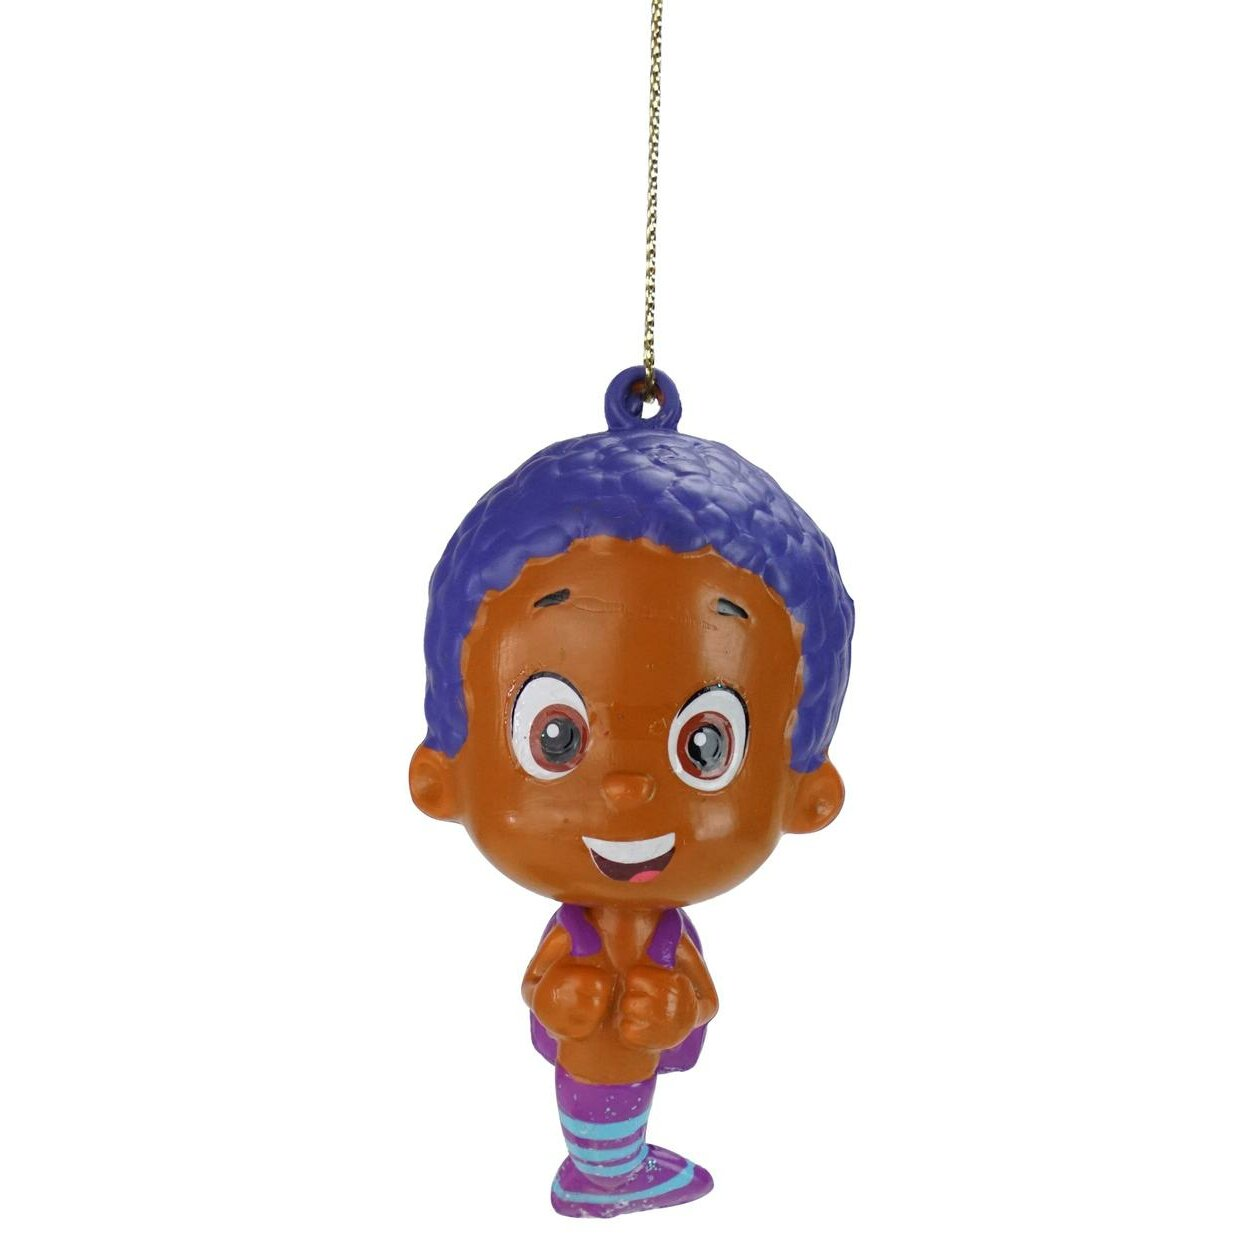 Goby Nickelodeon Bubble Guppies Character Christmas Hanging Figurine  Ornament